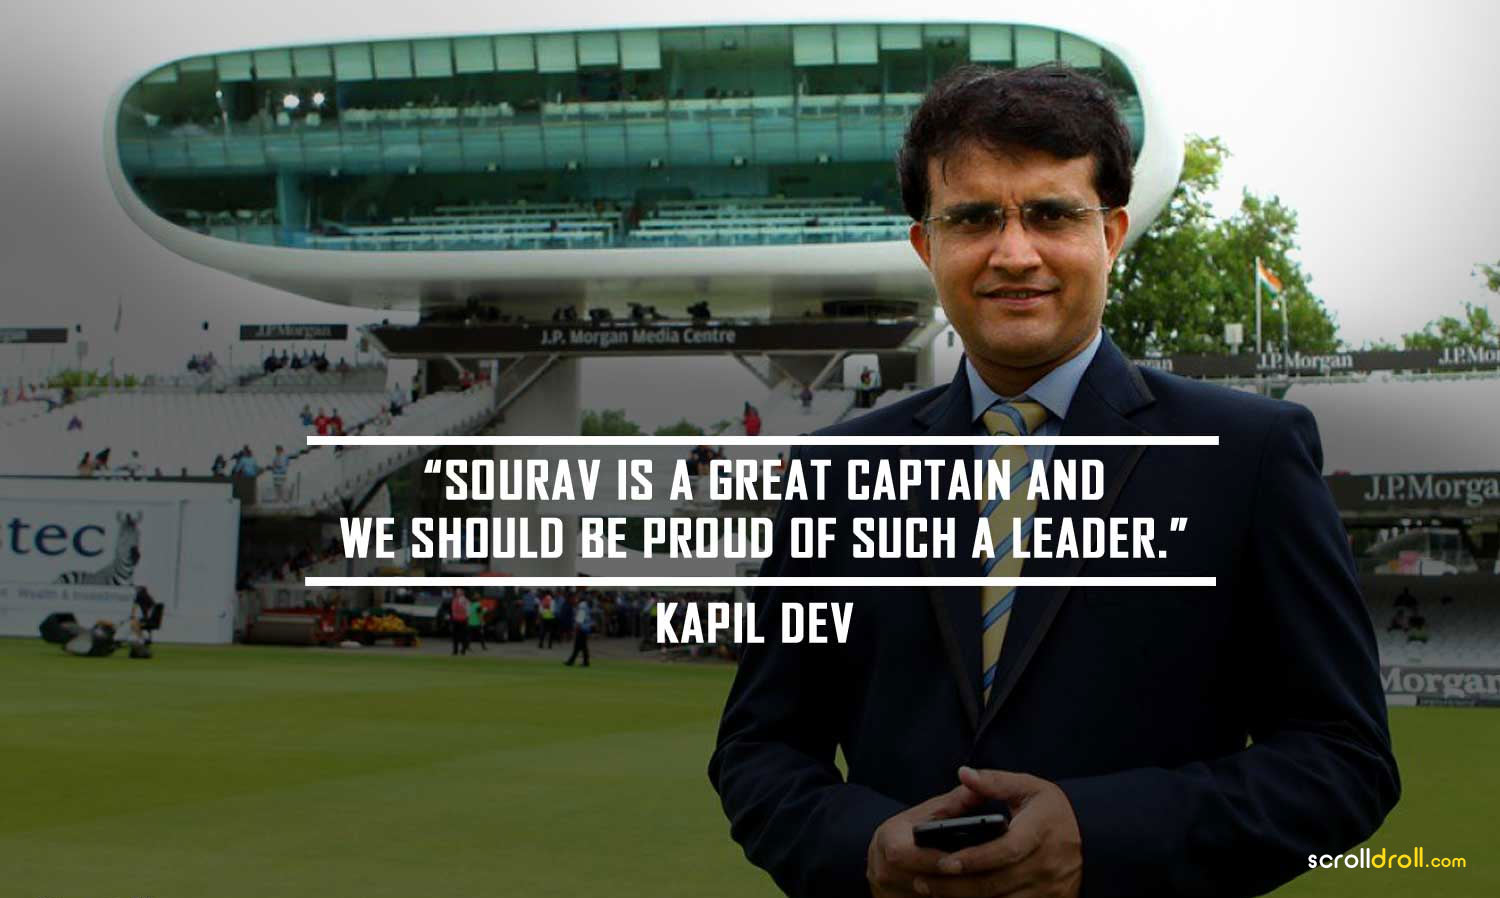 Quotes on Sourav Ganguly (11)